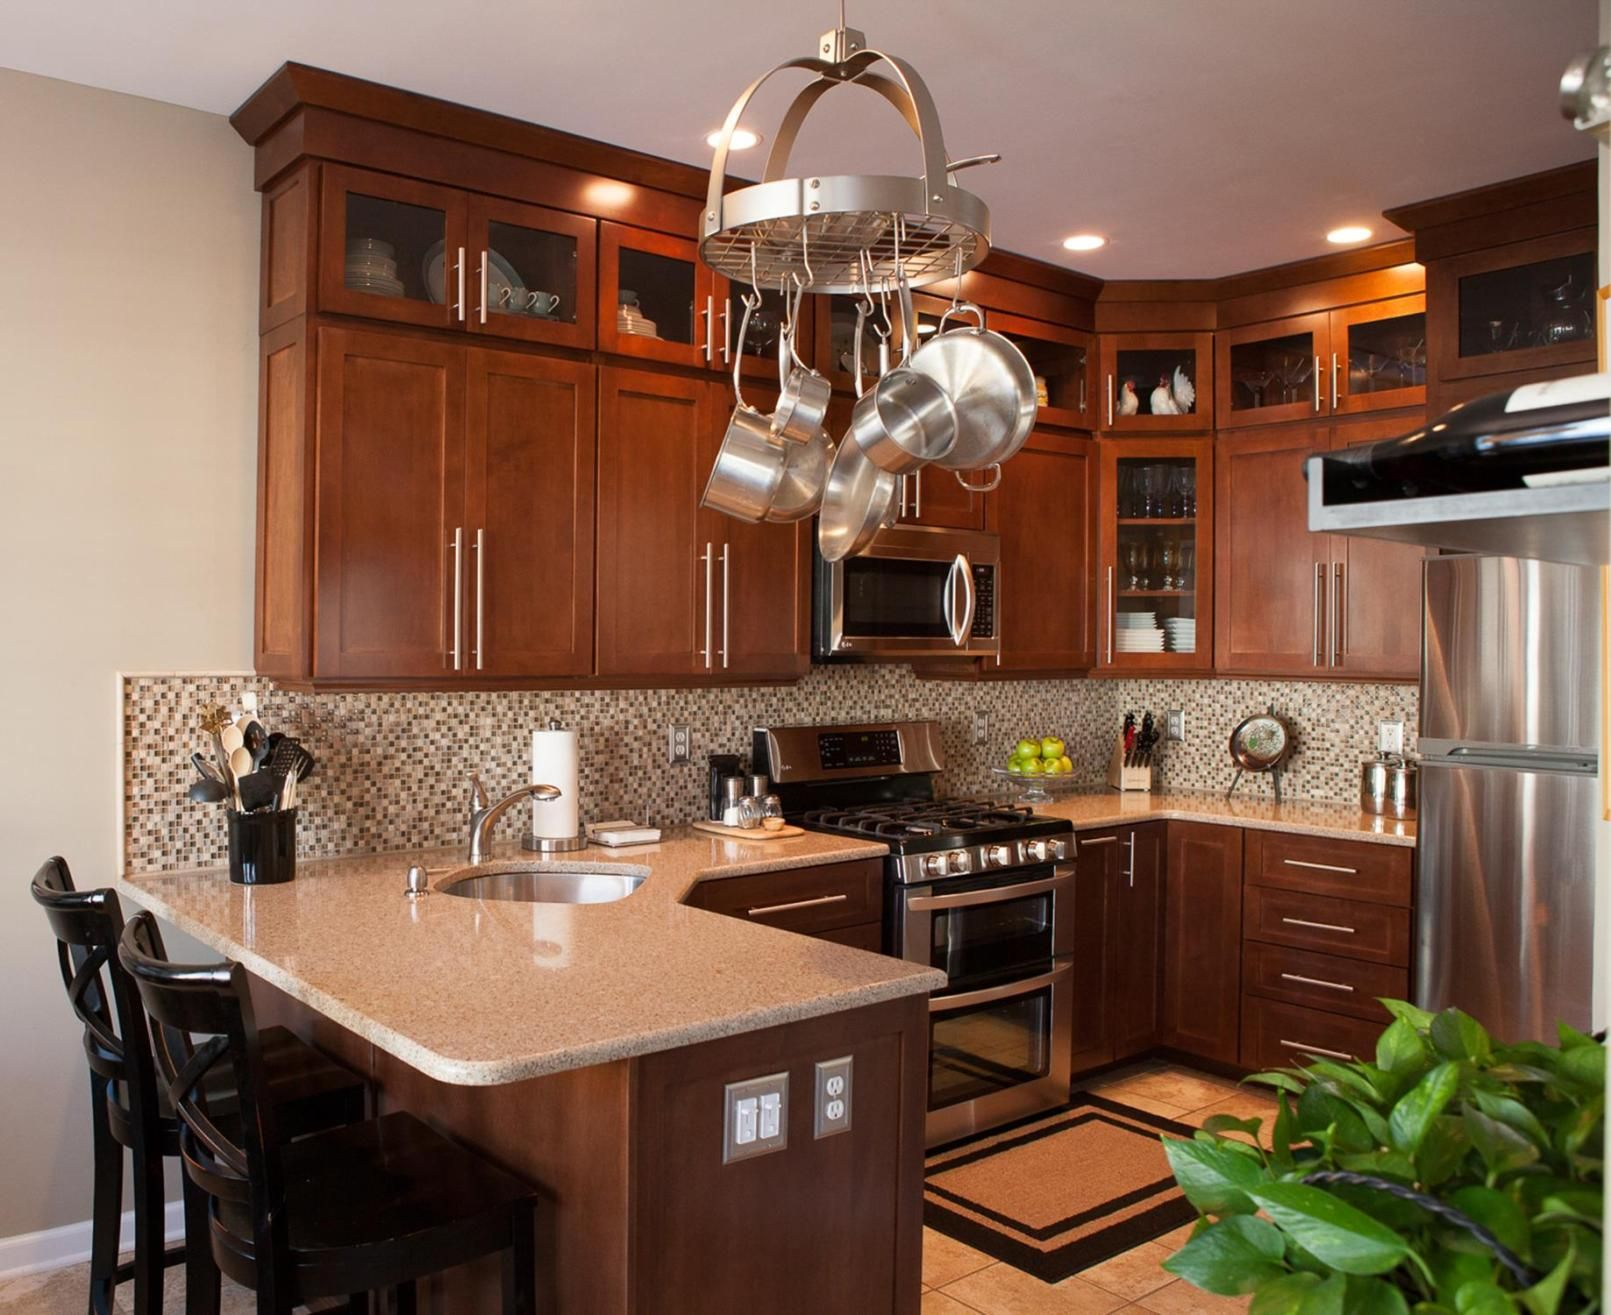 39 Awesome Townhouse Kitchen Remodel Design Daily Home List Kitchen Remodel Small Design My Kitchen Kitchen Design Small